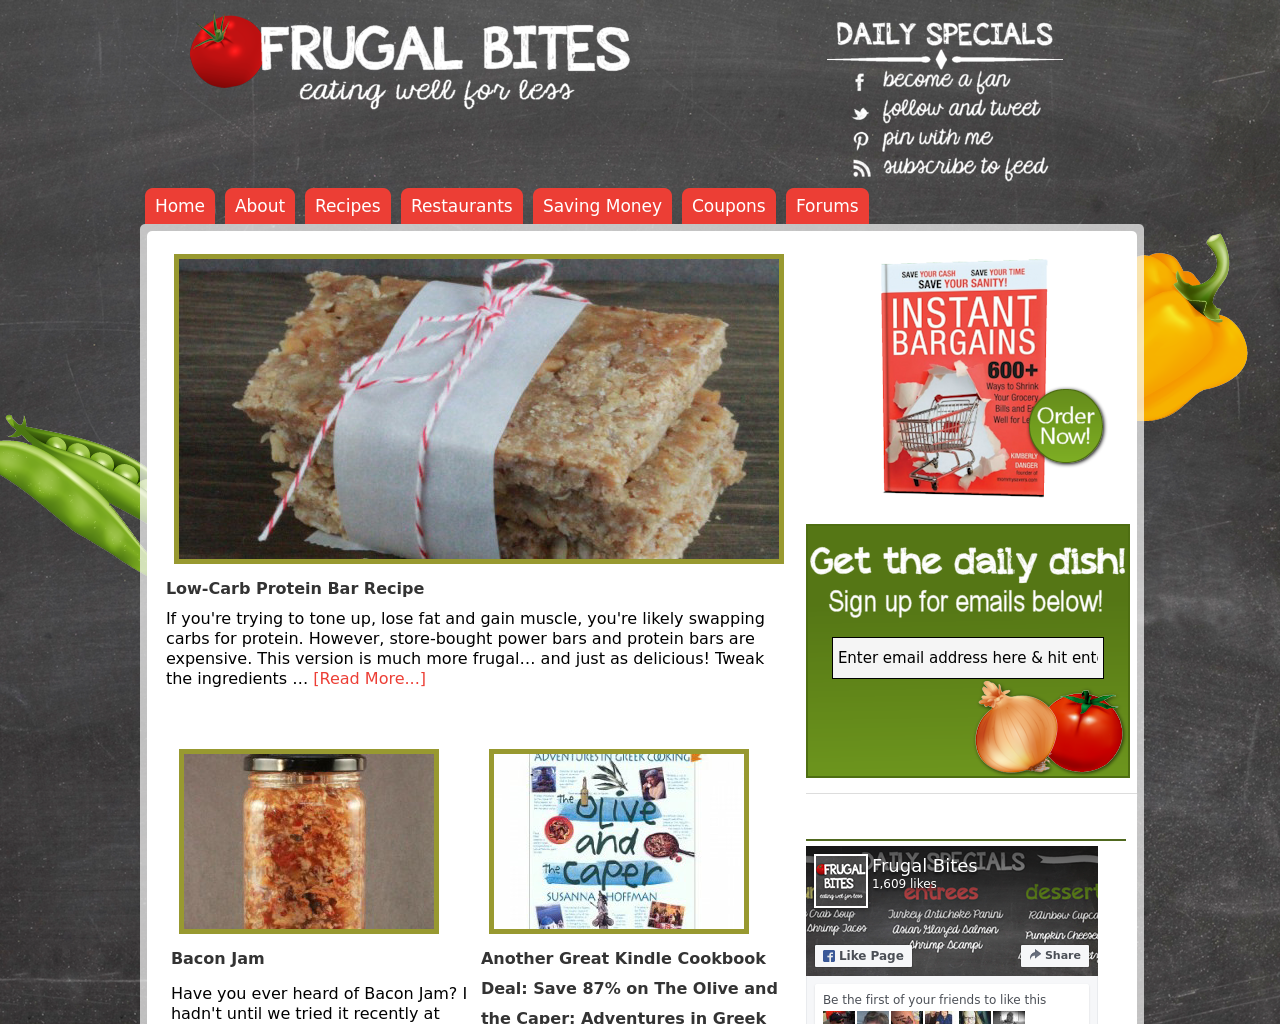 Frugal-Bites-Eating-well-for-less-Advertising-Reviews-Pricing